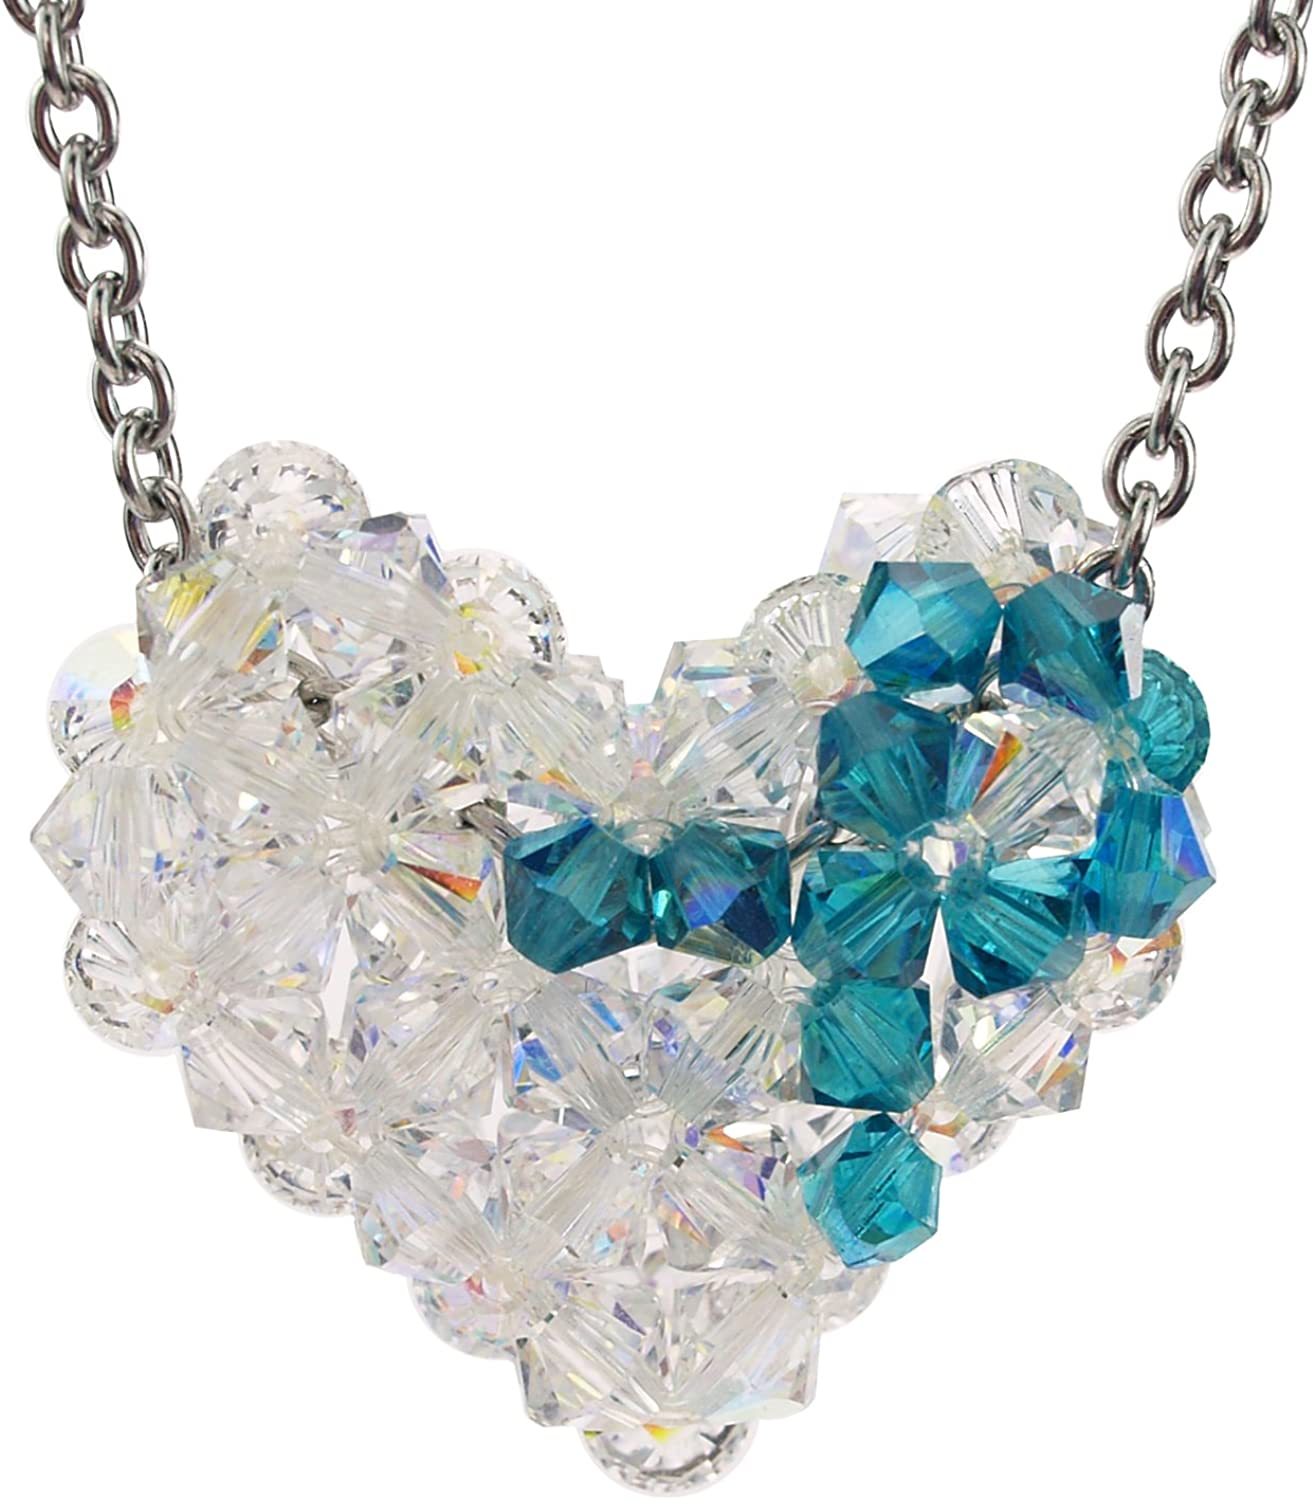 Amazon Com Swarovski Crystal Ovarian Cancer Awareness Puffy Heart Necklace With Stainless Steel Chain Jewelry